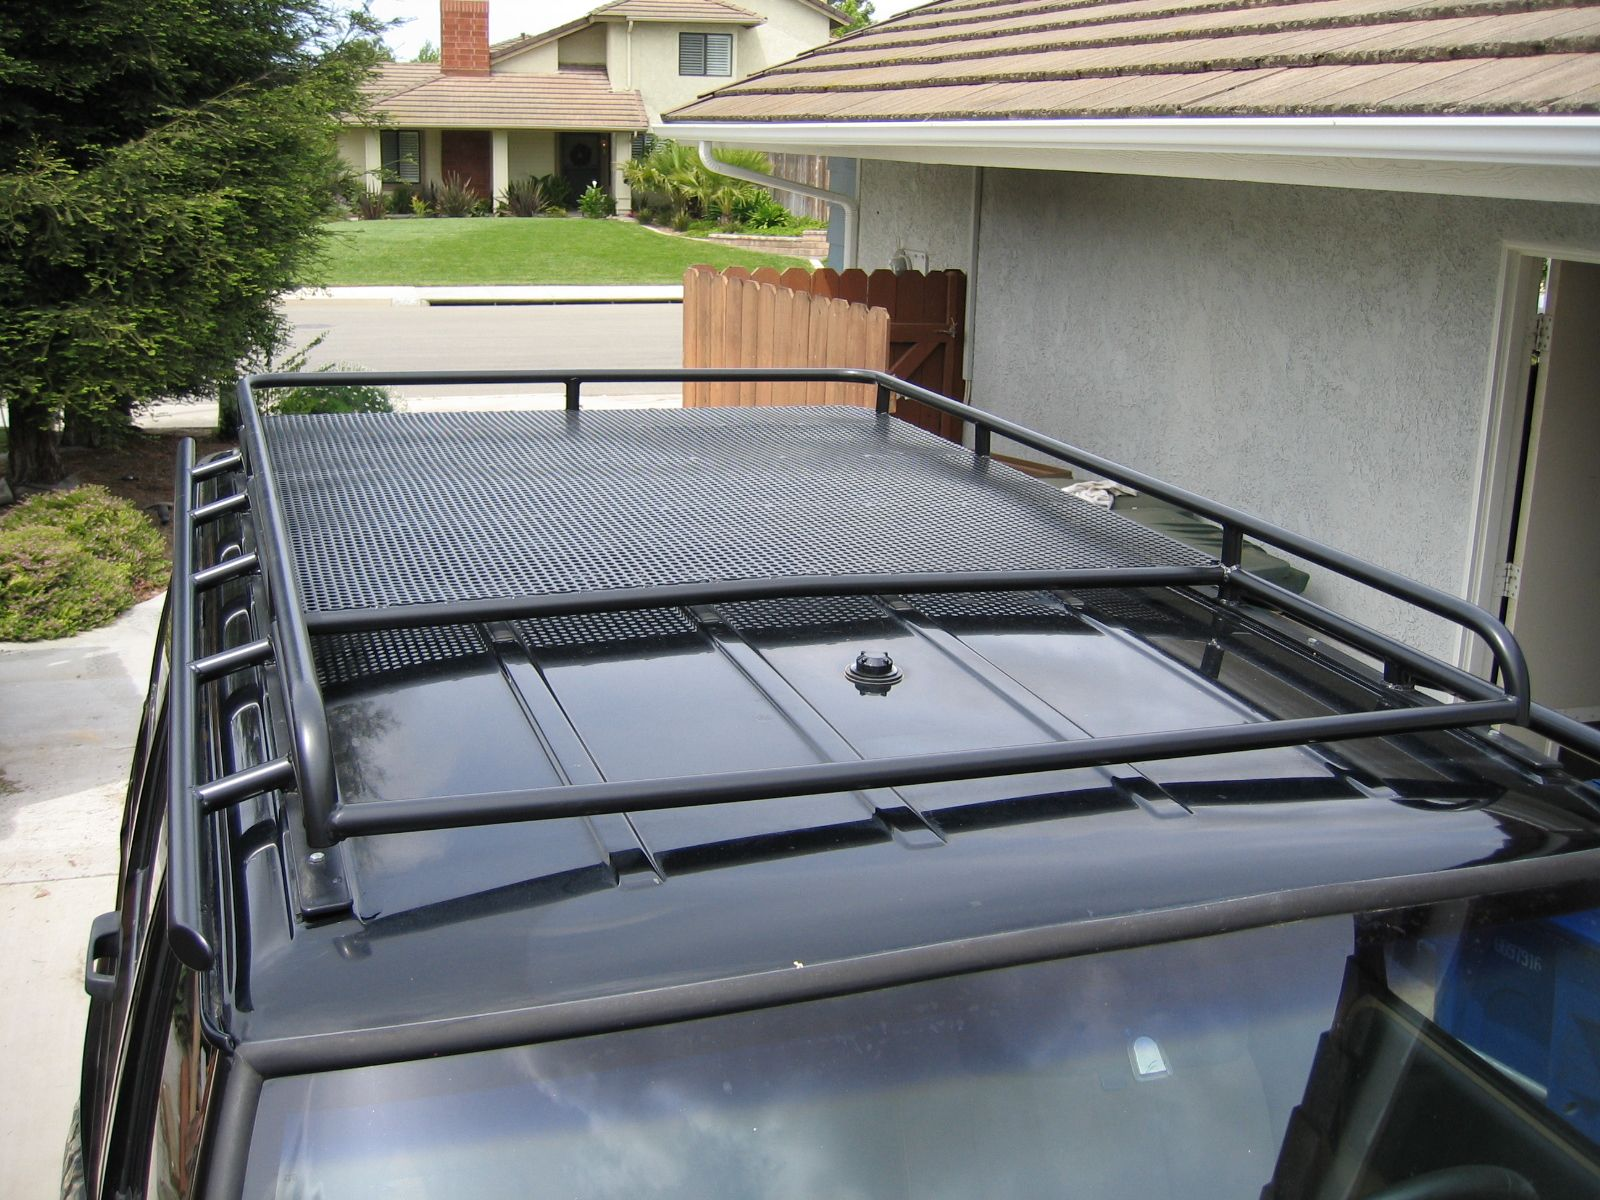 Xj Rack Idea Roof Rack Jeep Xj Jeep